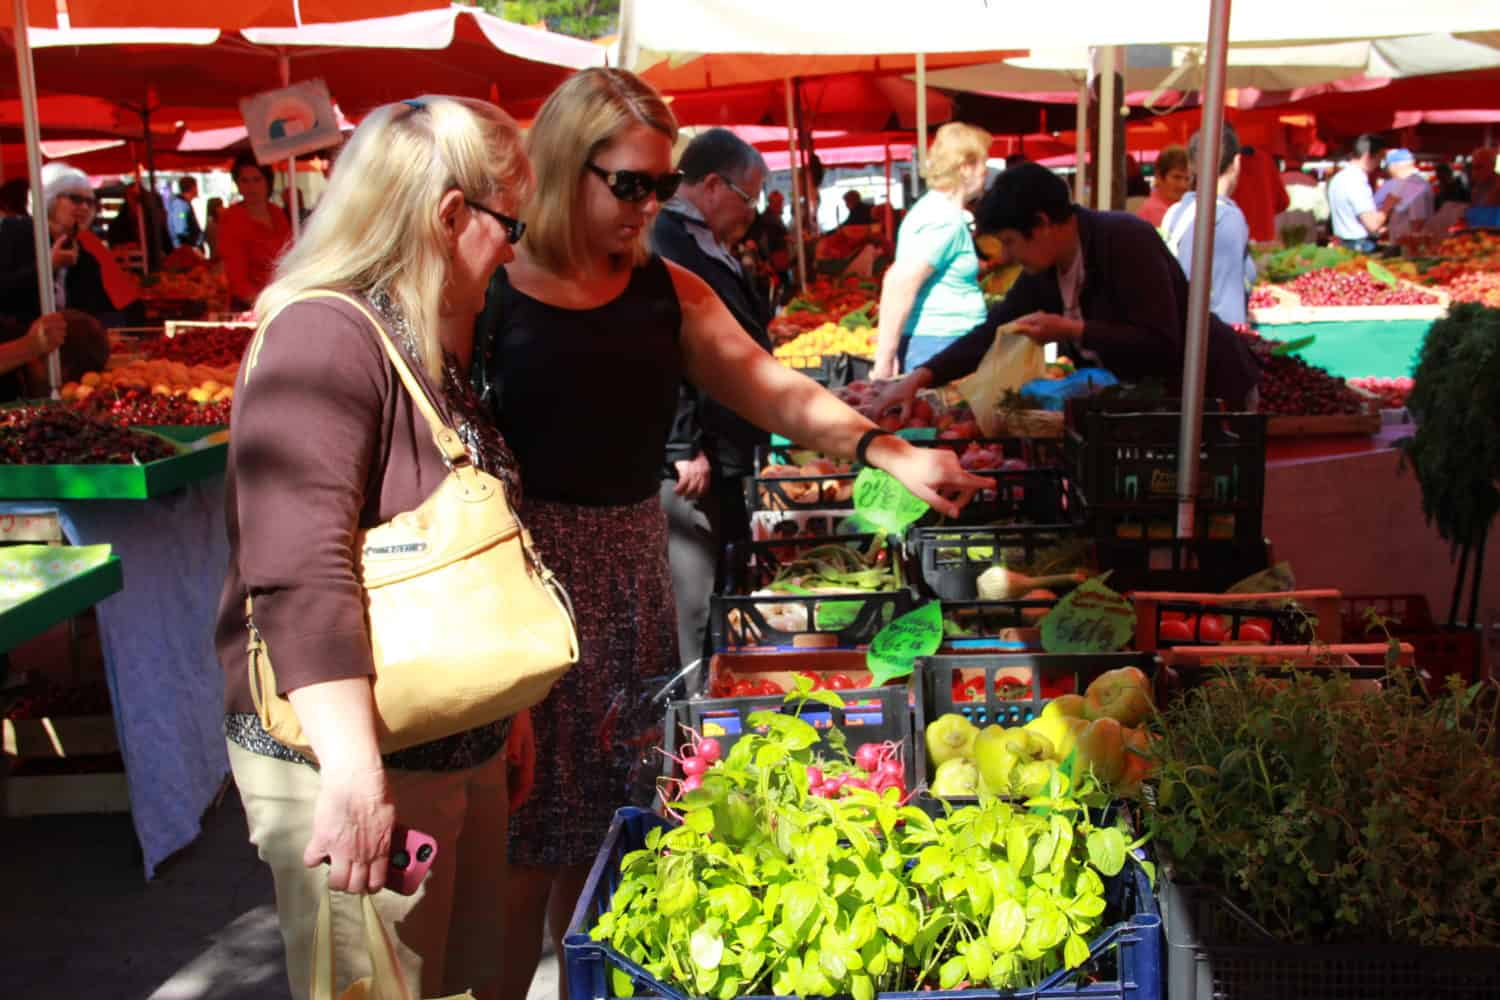 Ljubljana, City of Dragons...this gorgeous, vibrant city is worth exploring, and the weekend farmers market is the perfect way--one of the biggest farmers markets I've ever seen.